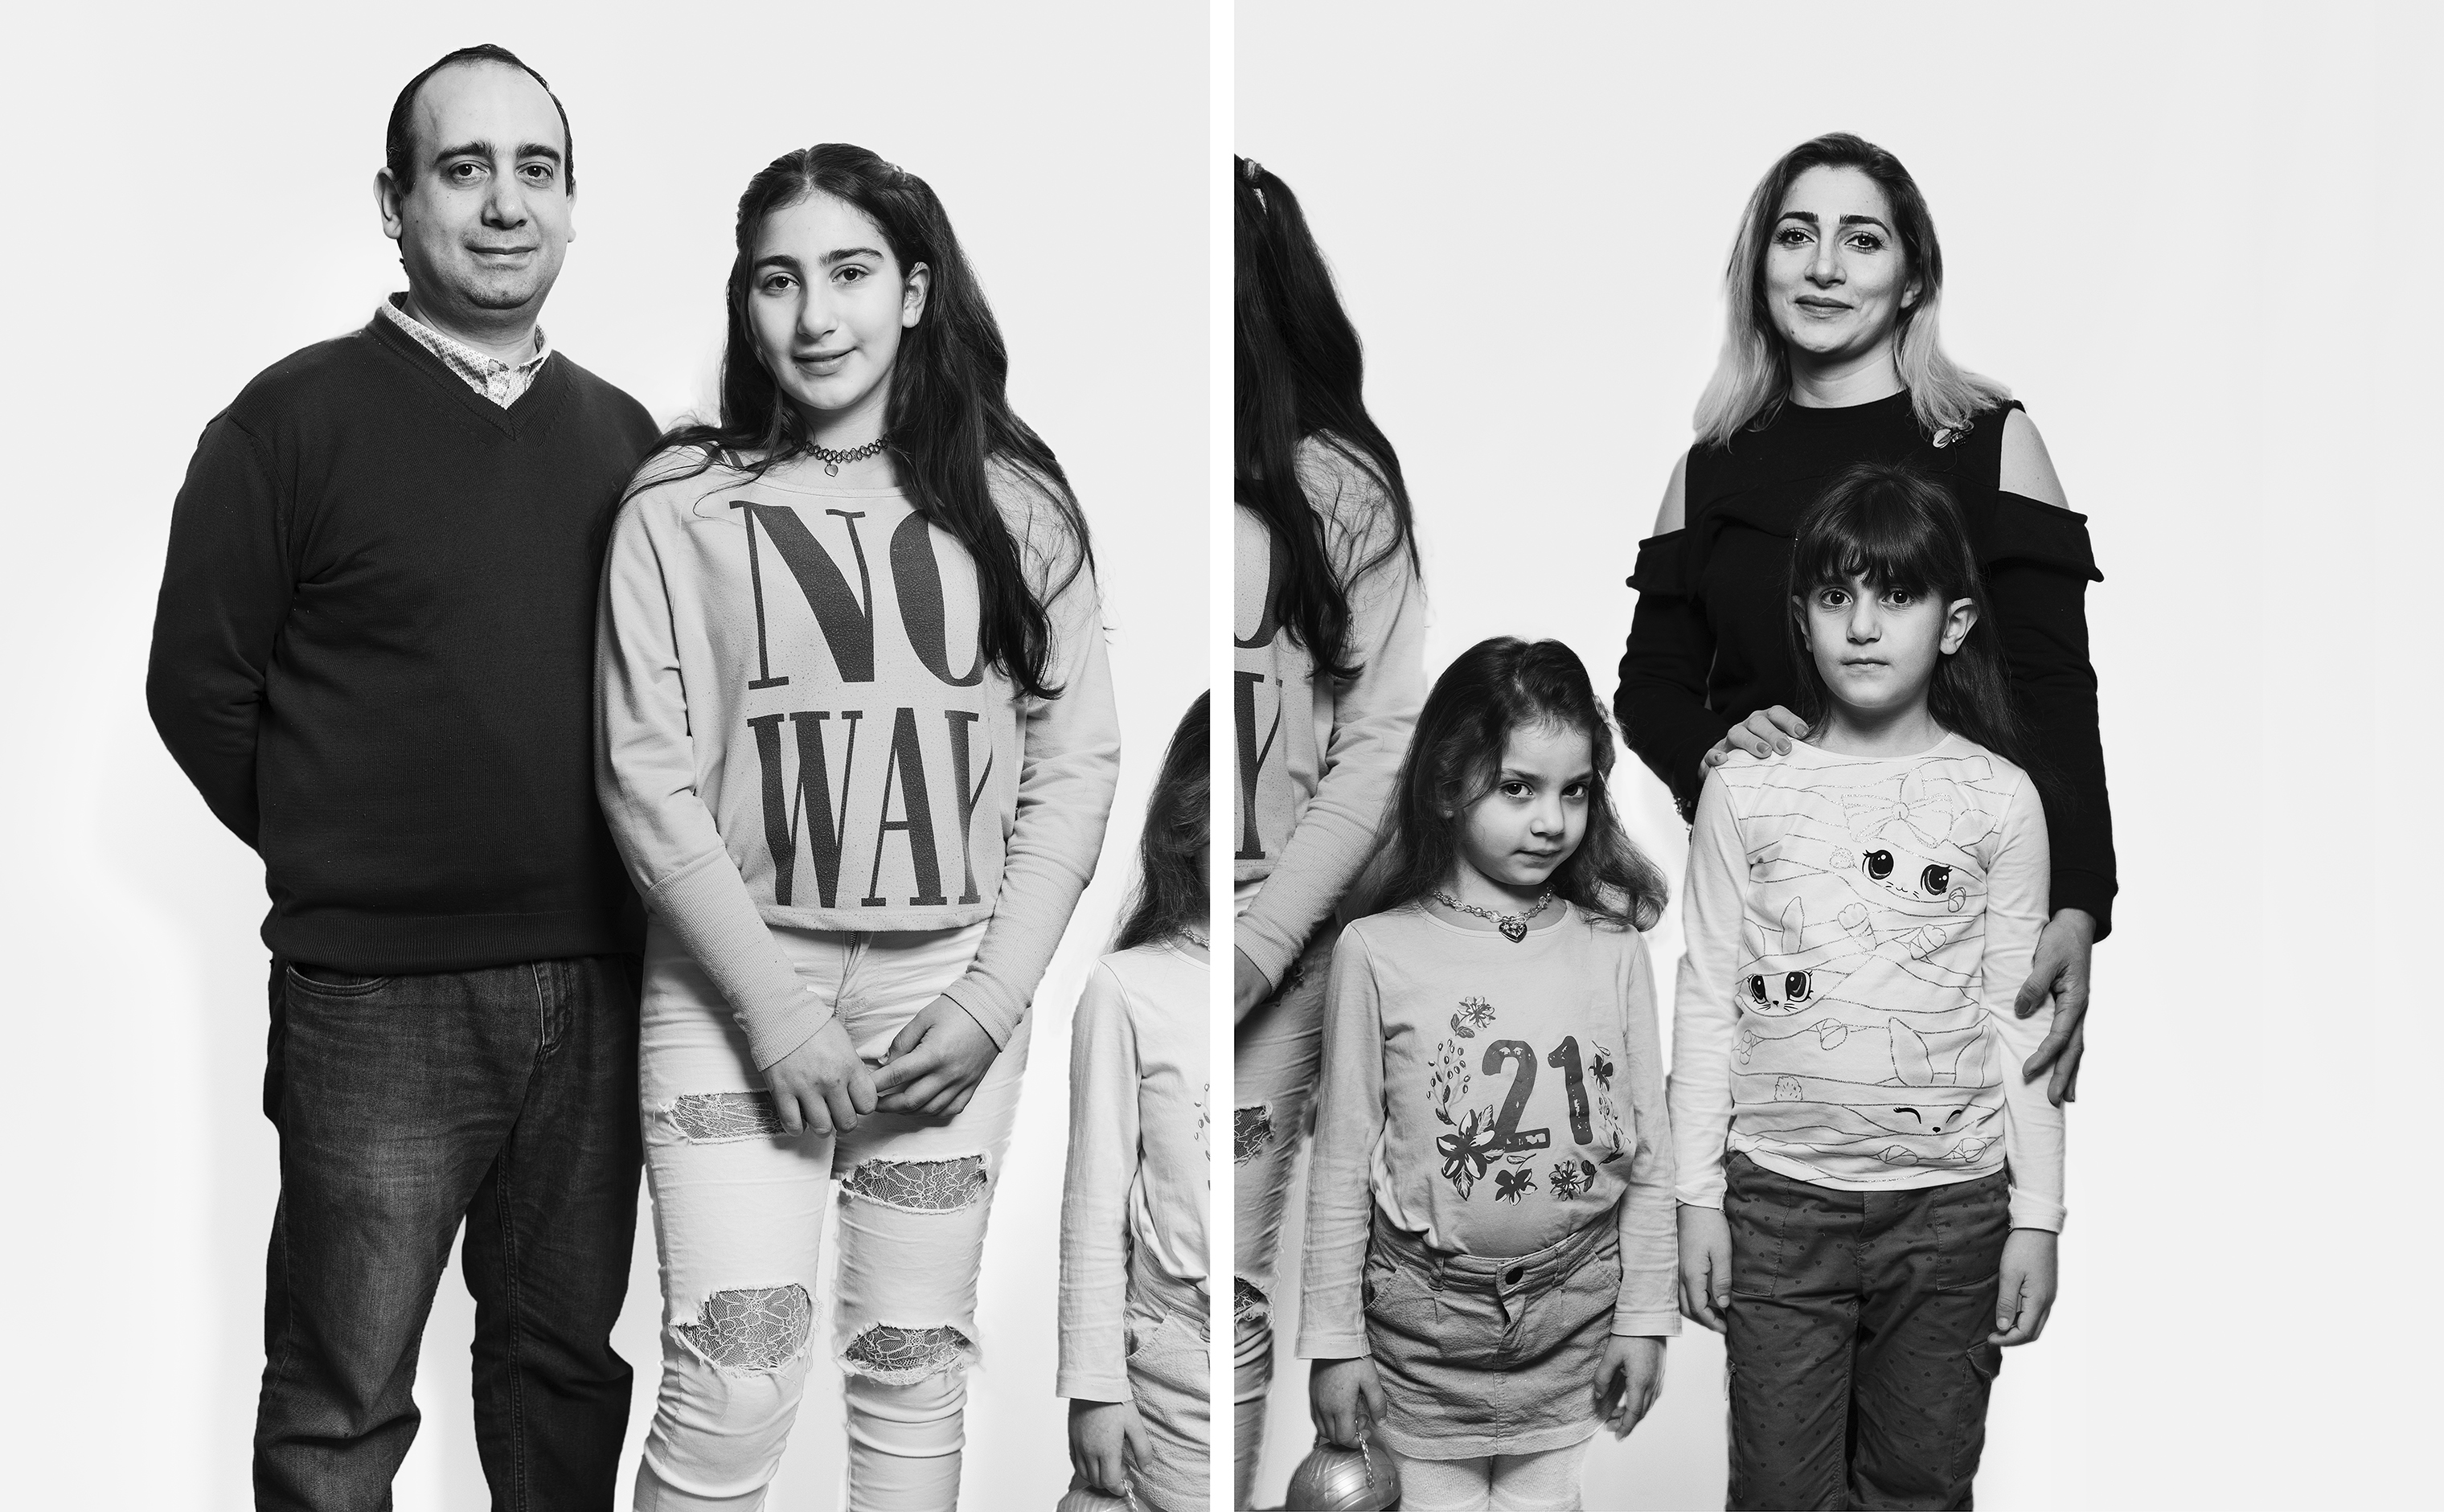 Sami Baladi, 43, and his wife Mirey Darwich, 37 (far right), fled the civil war in Syria with their children Fabienne, 12, and Joyce, 7. Darwich was pregnant with Clara, 4, when they left their home. The family now runs a Syrian restaurant in Lippstadt, Germany